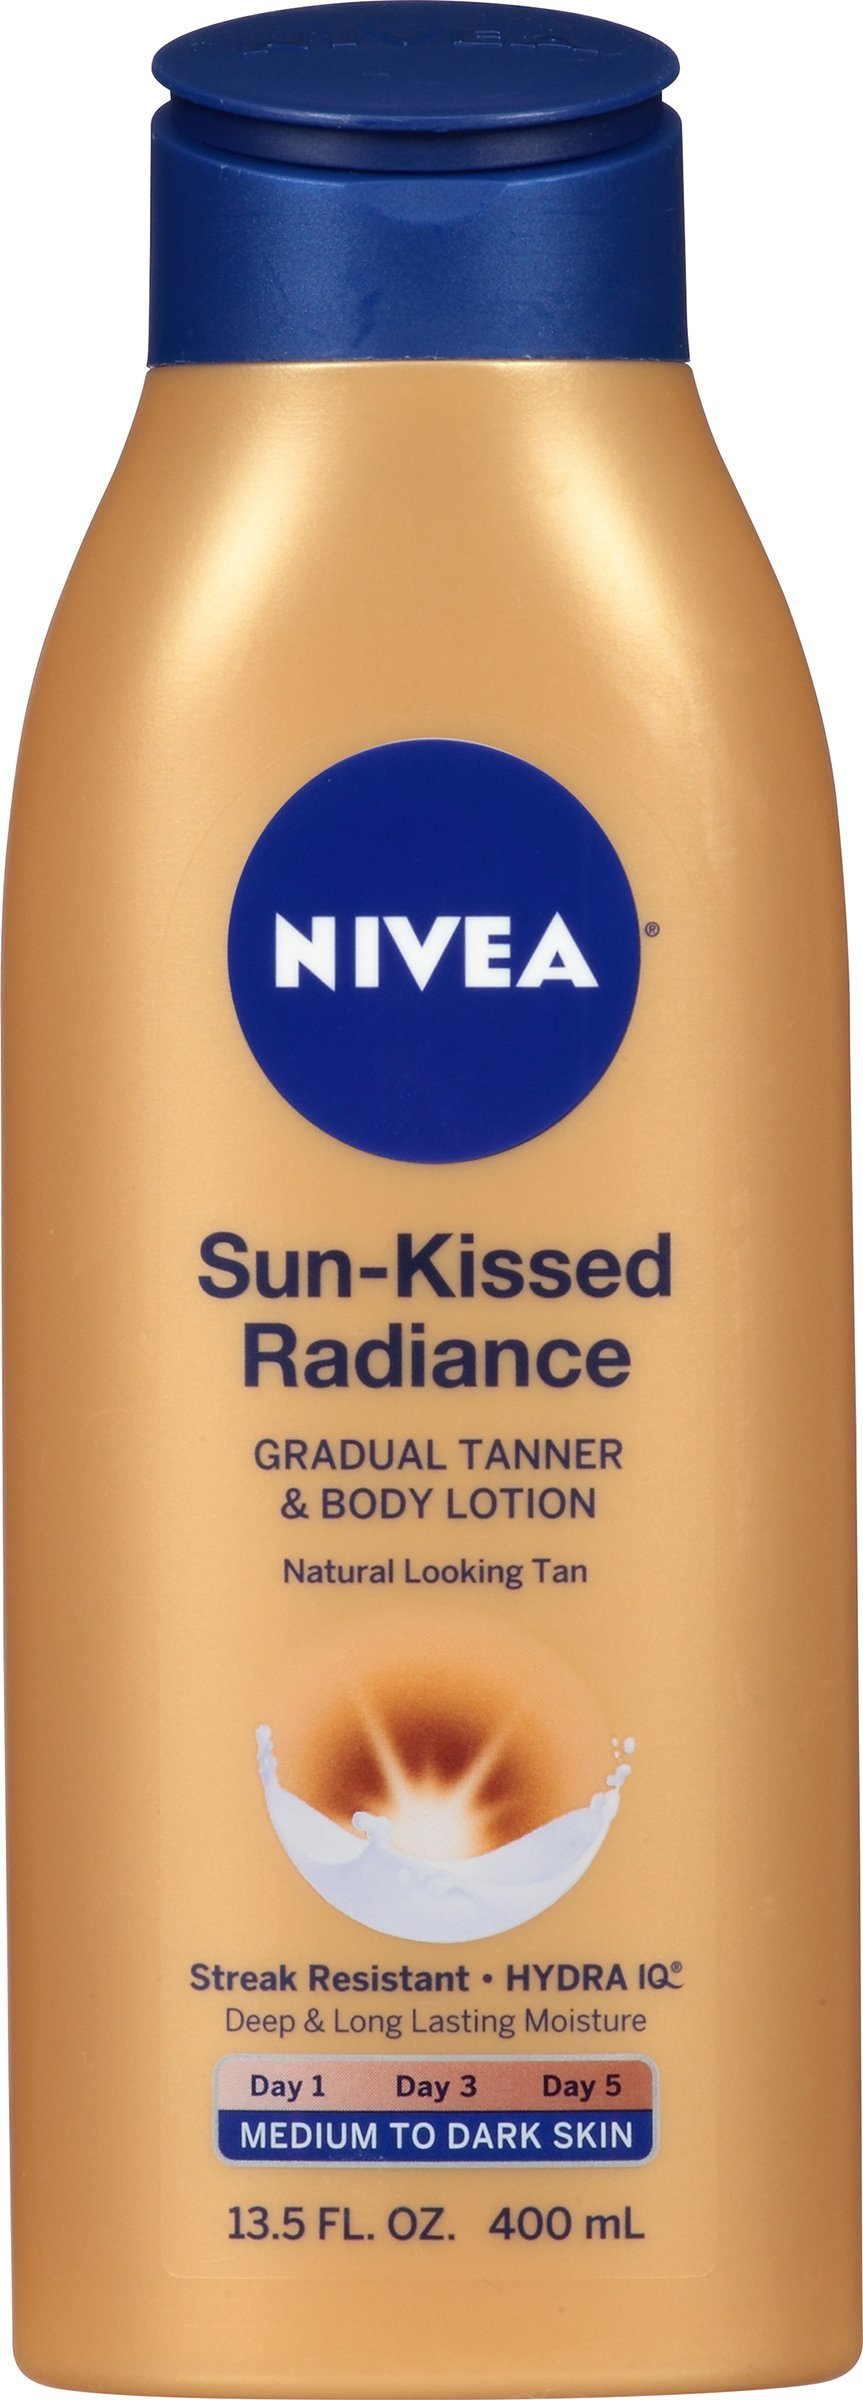 NIVEA Sun-Kissed Radiance Medium to Dark Skin Gradual Tanner & Body Lotion 13.5 Fluid Ounce by Nivea